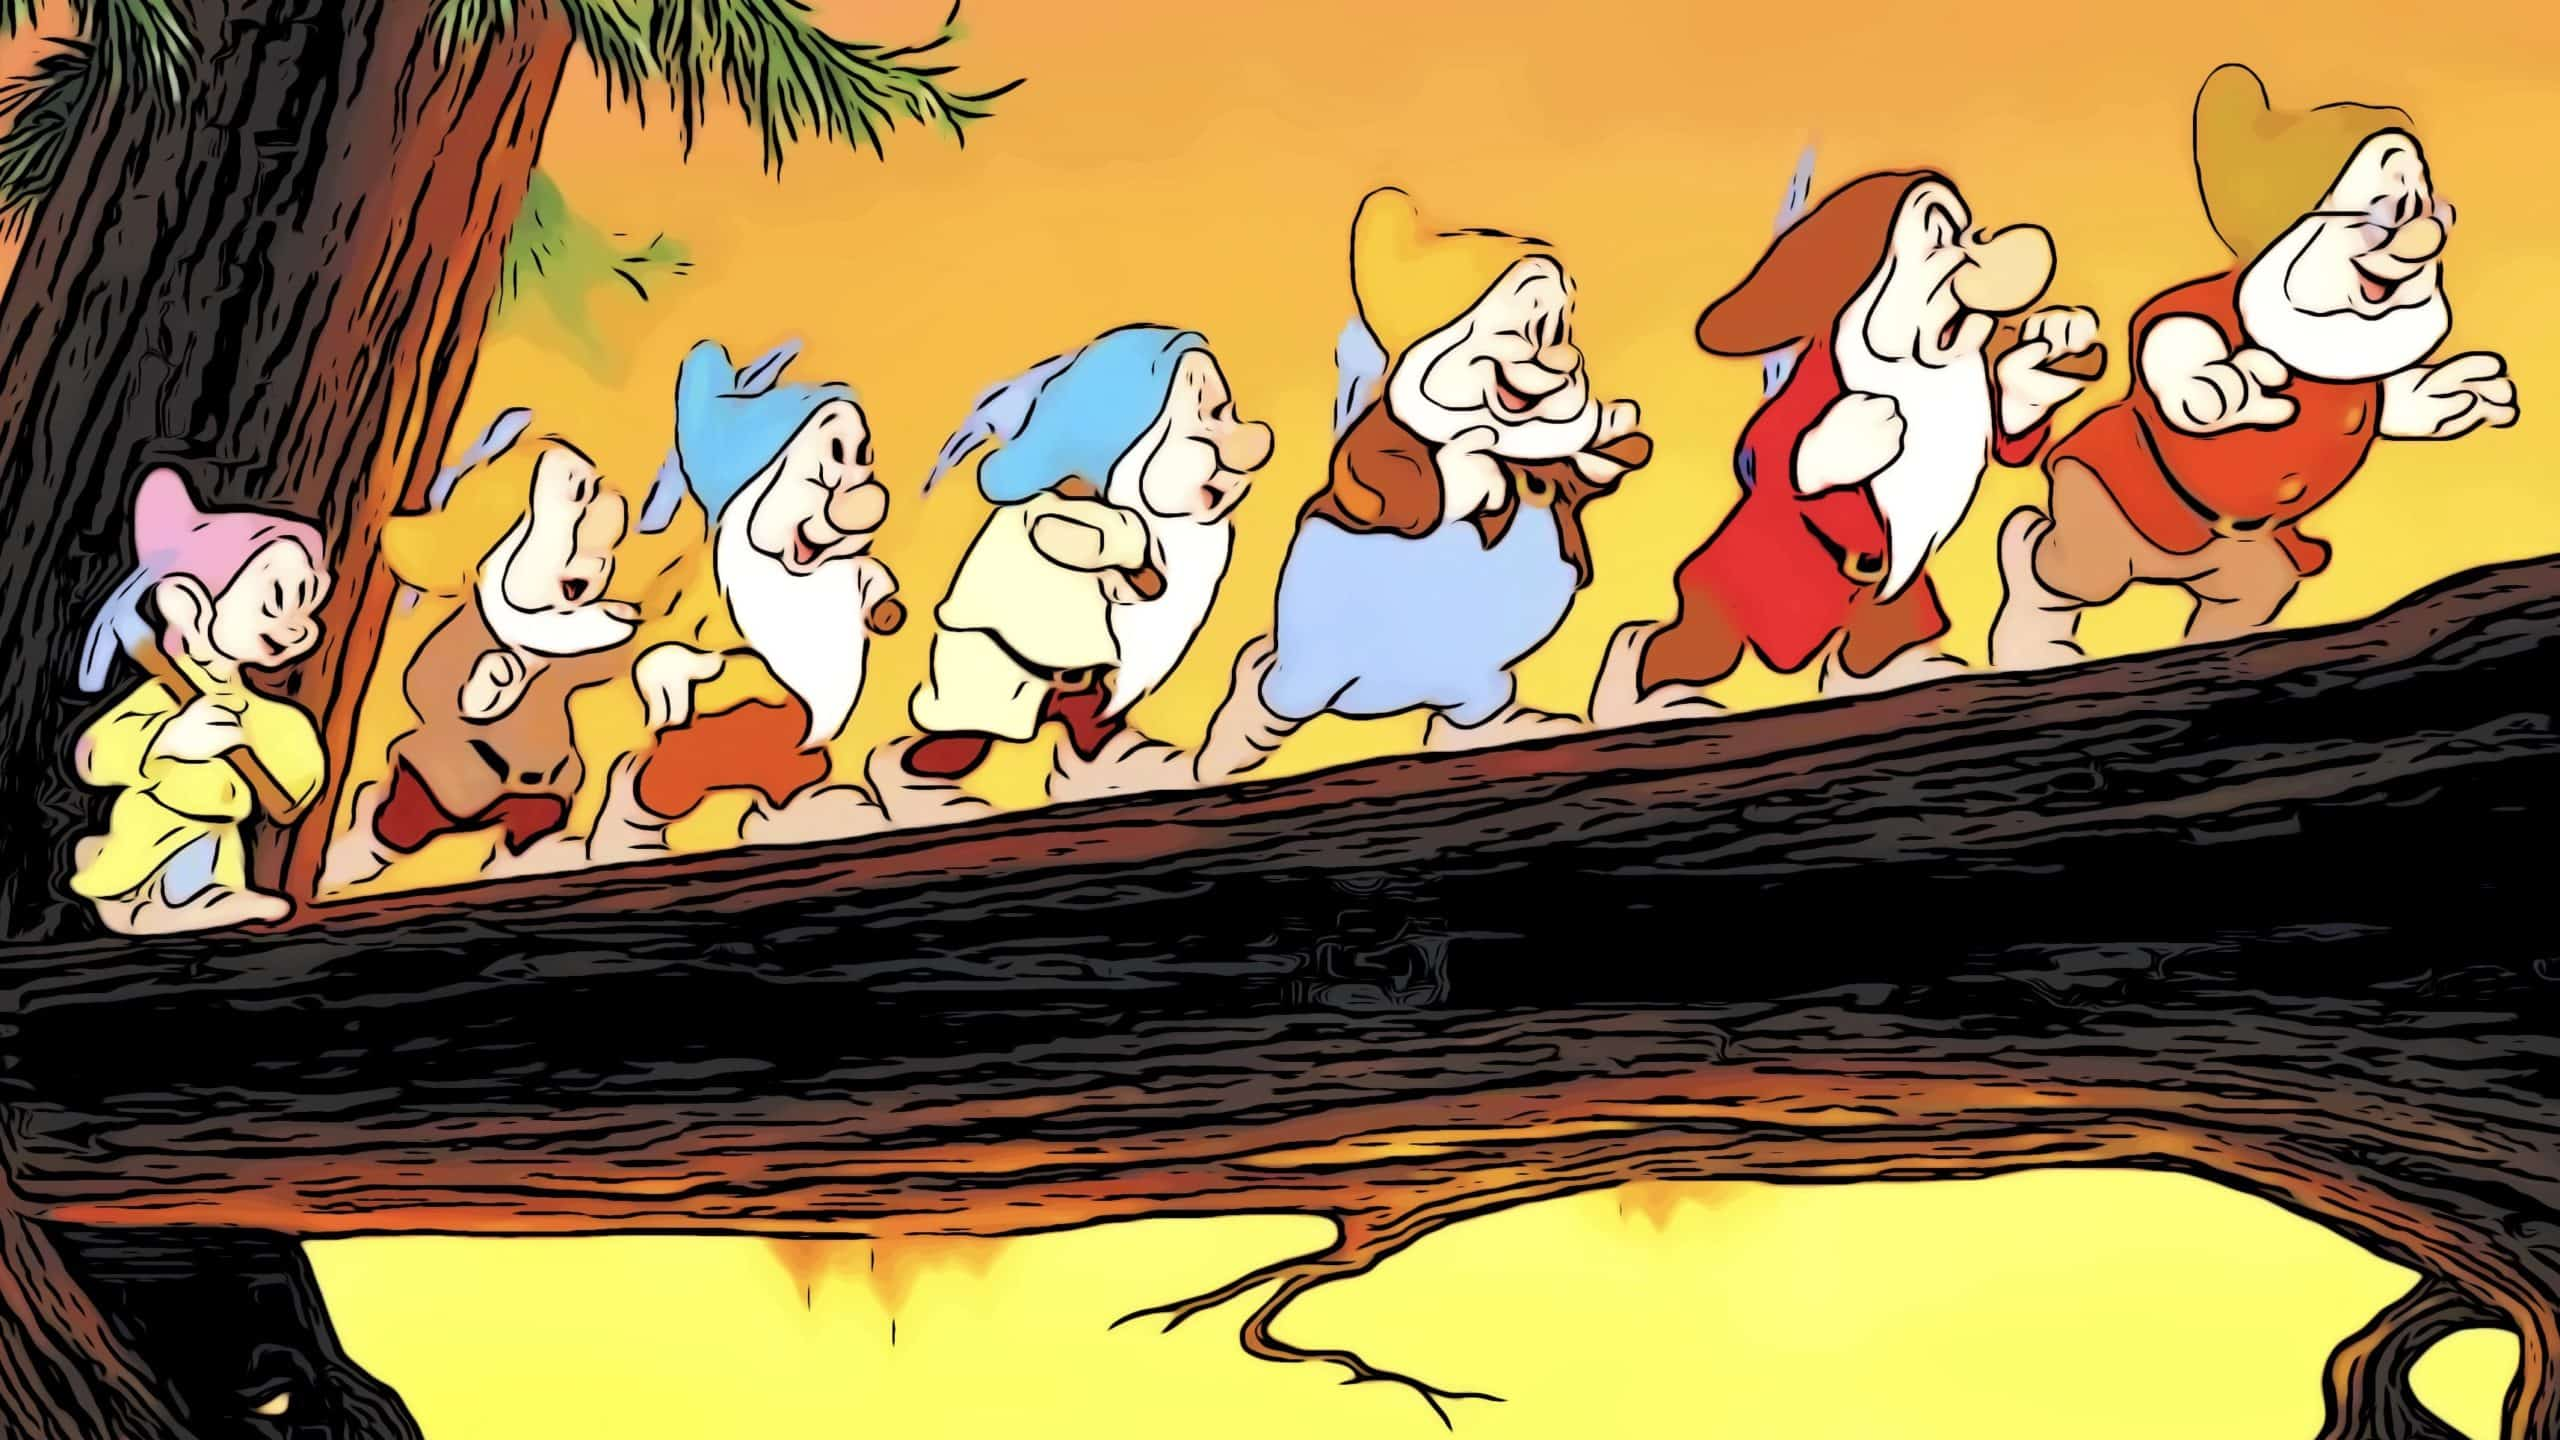 Here Are The 7 Dwarfs Names Endless Popcorn